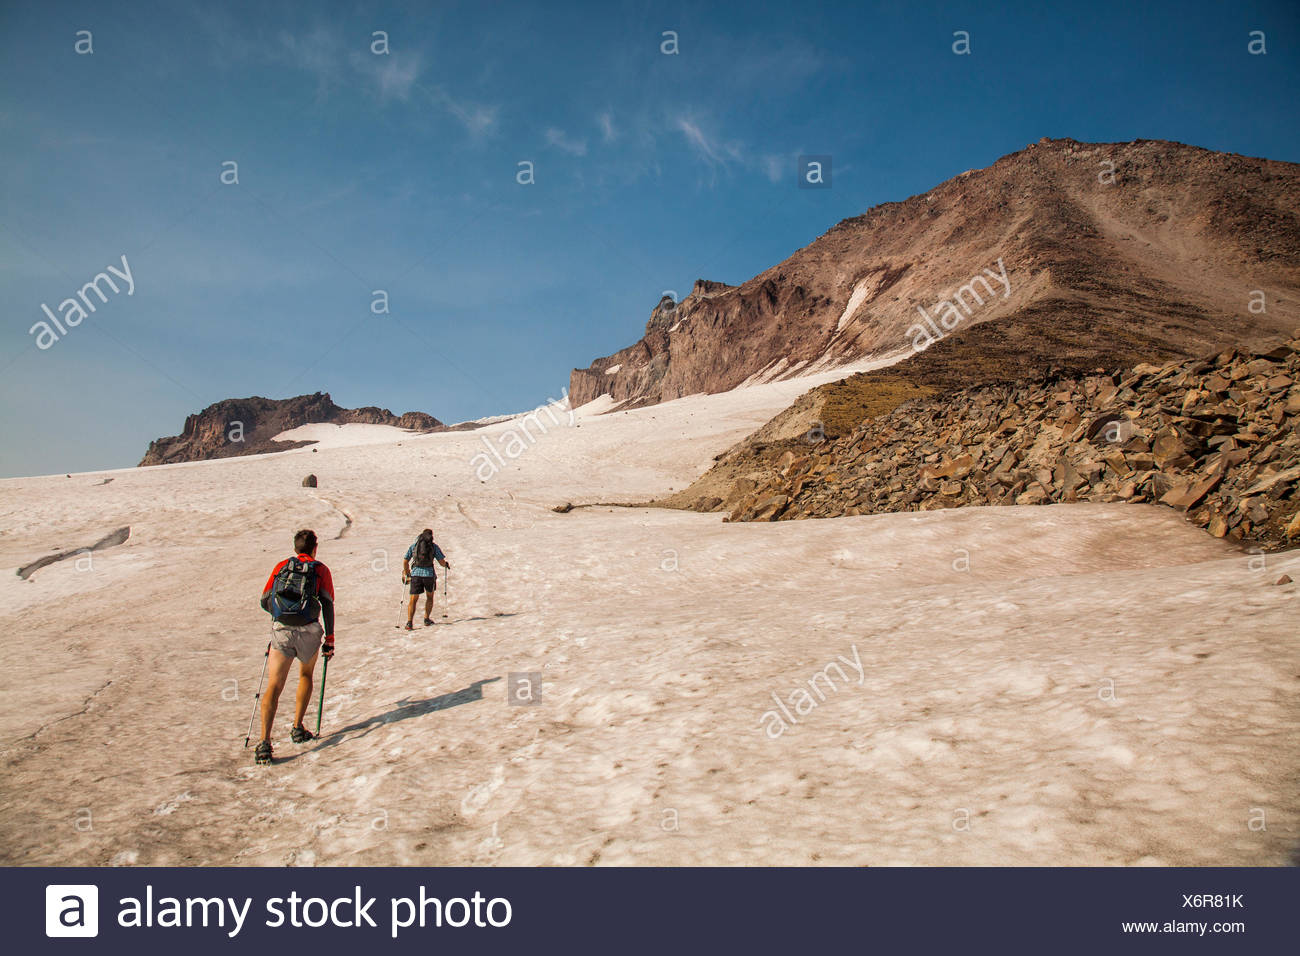 Two climbers ascend a snowfield while climbing Glacier Peak in the Glacier Peak Wilderness in Washington. - Stock Image